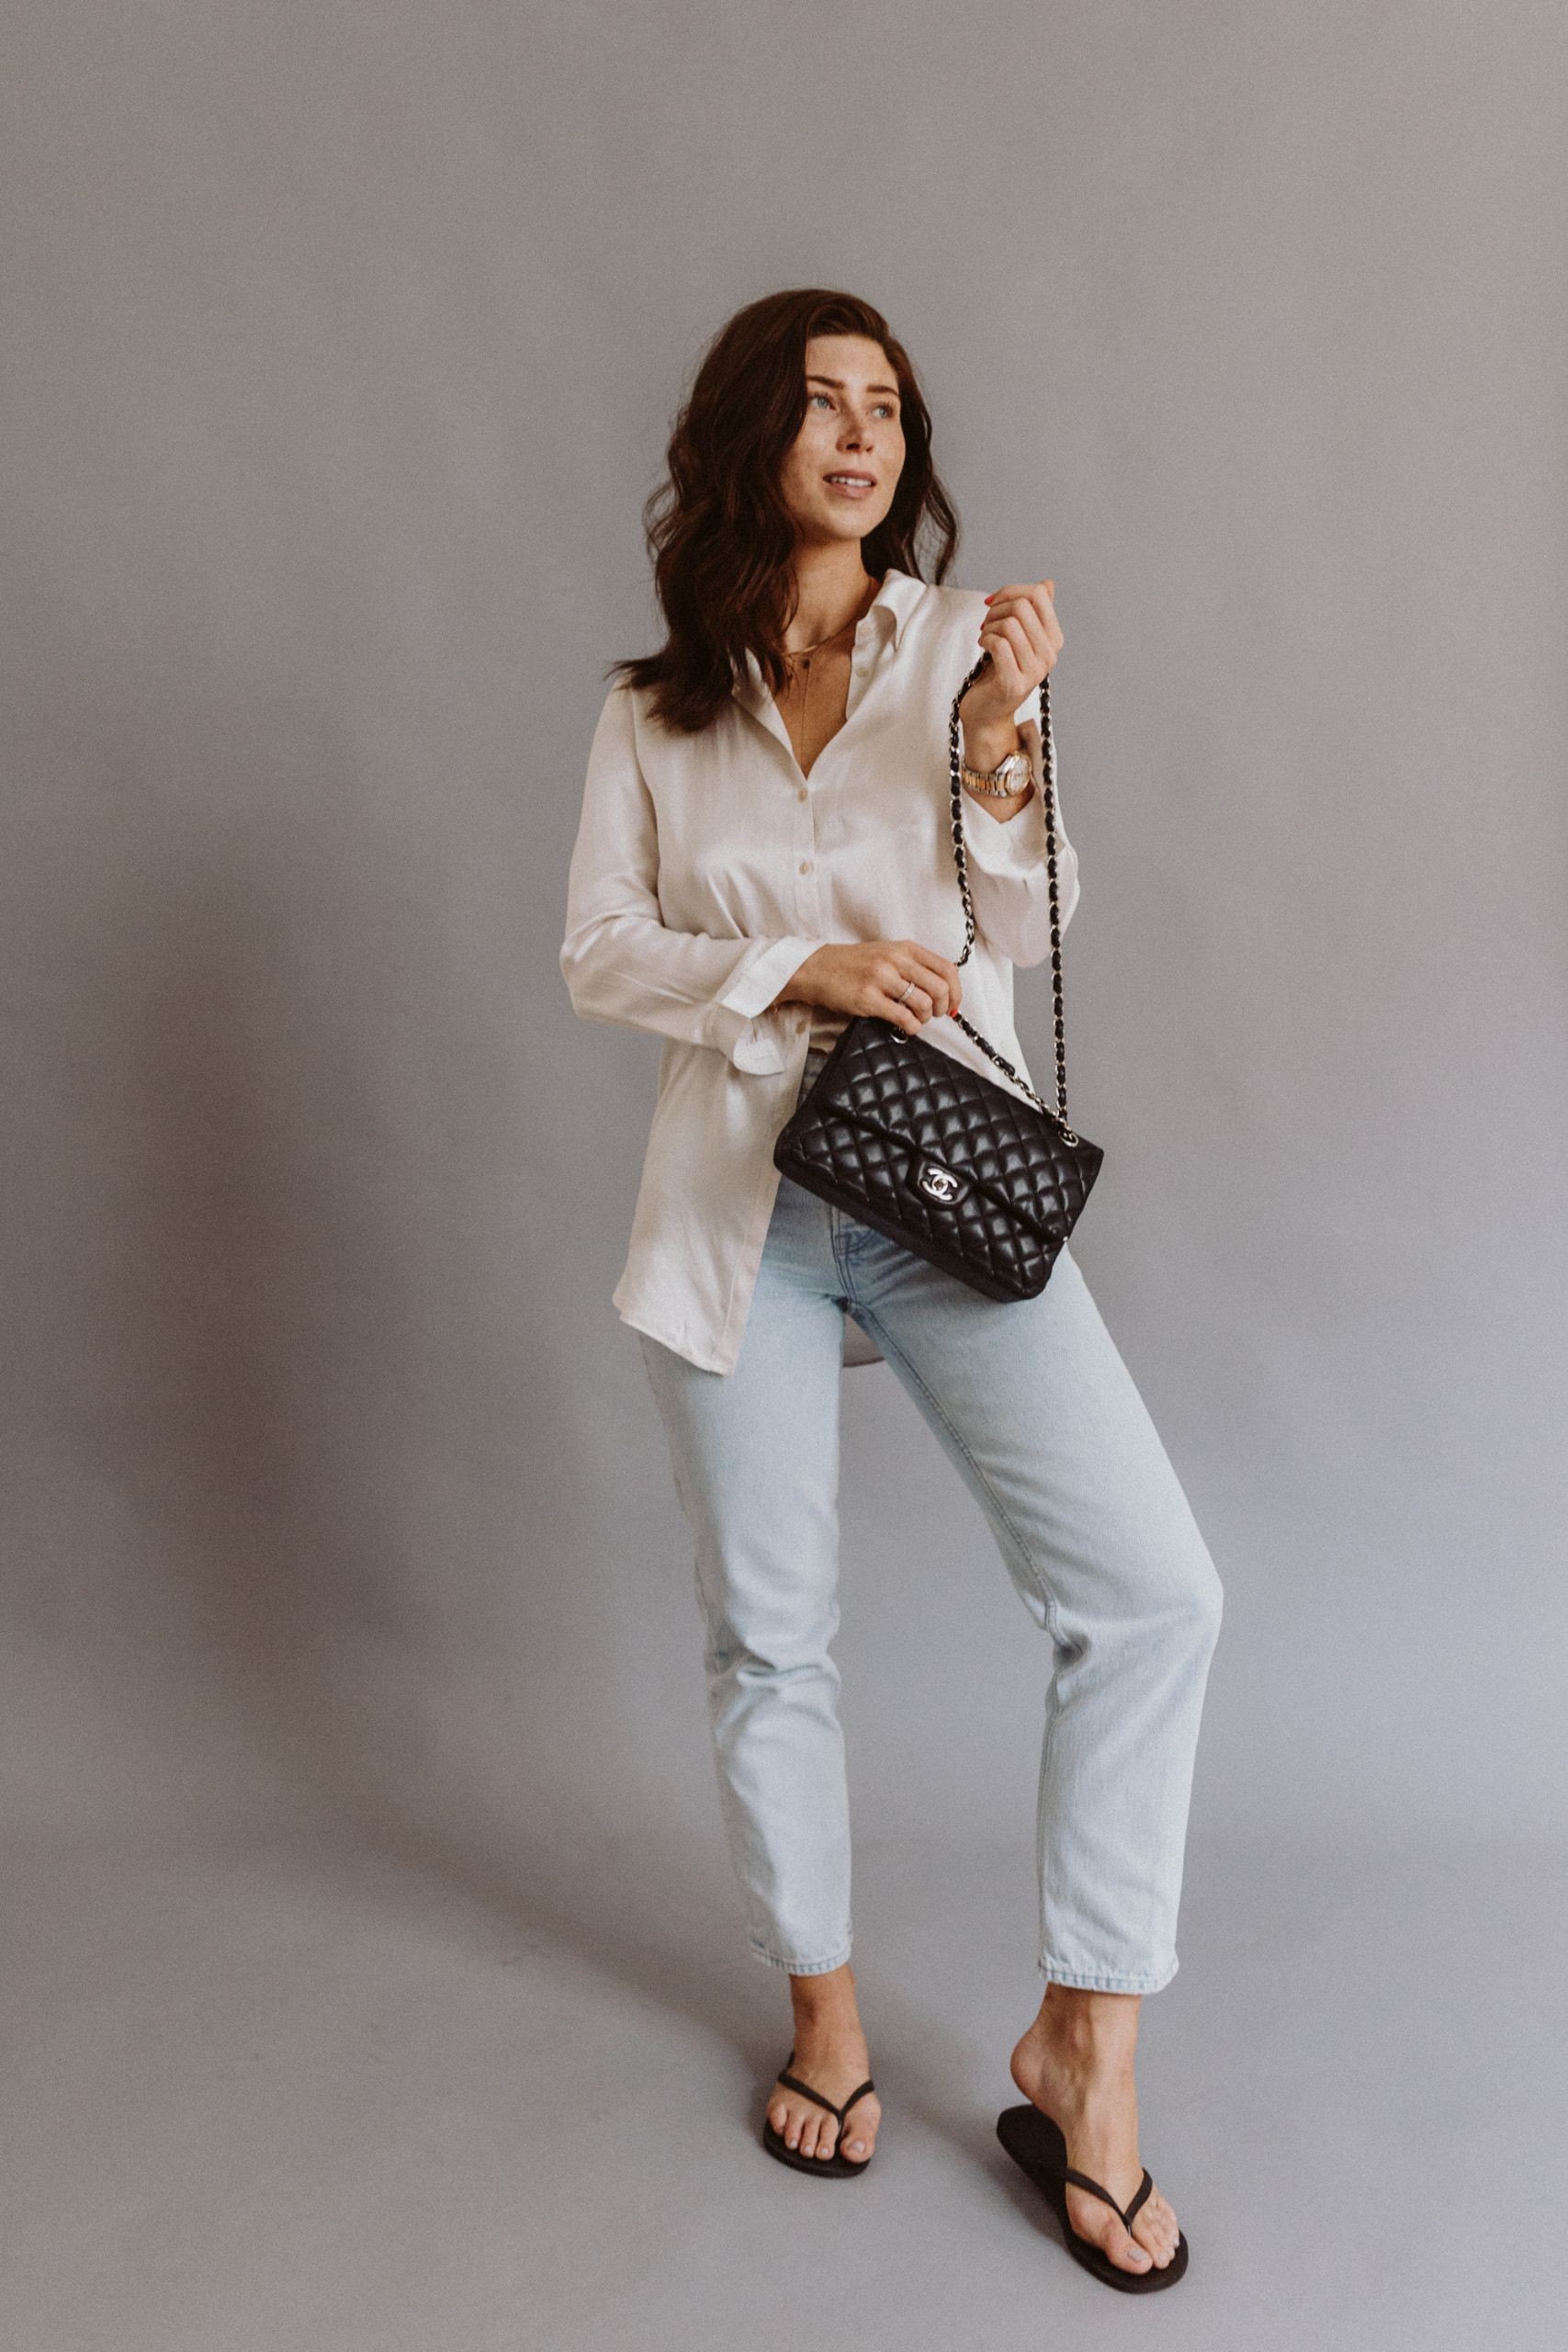 Weiße Bluse Styling Tipps - Love Daily Dose